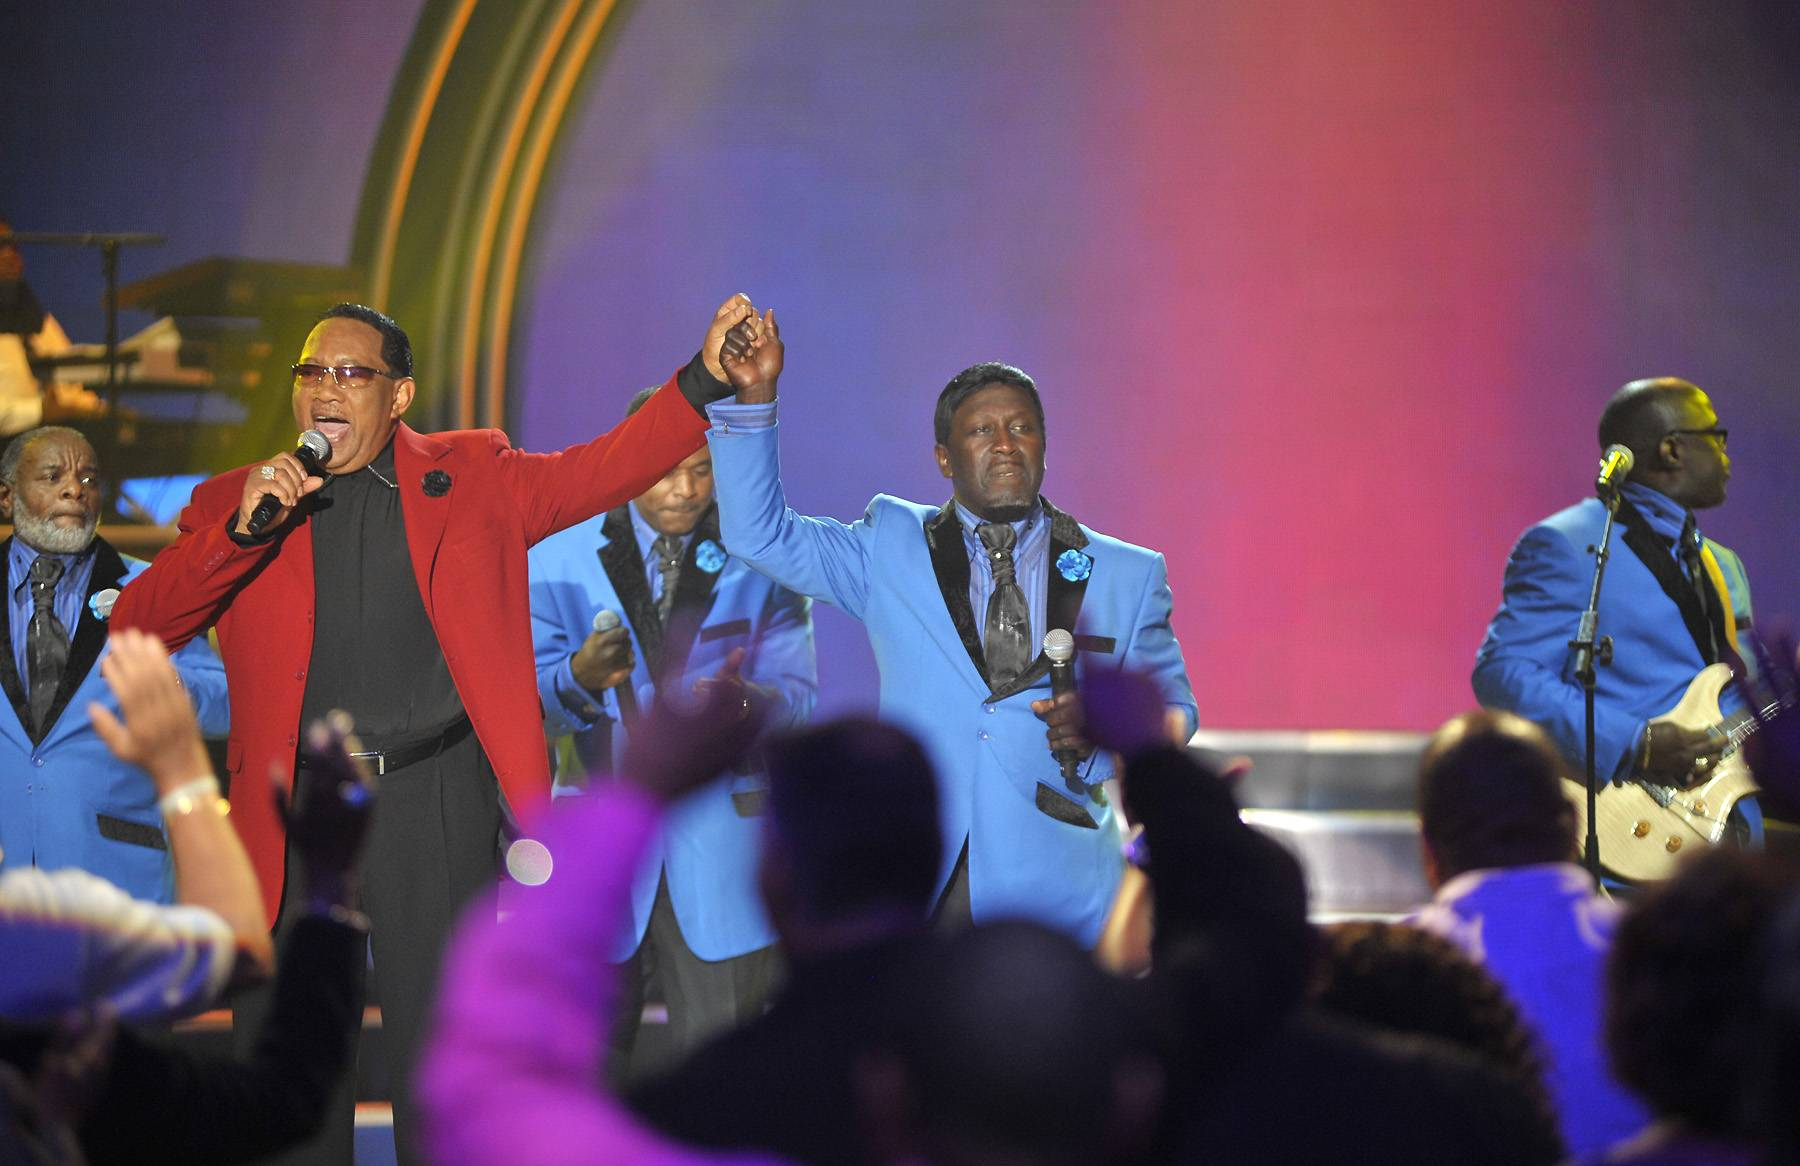 Bobby Jones, Doc McKenzie and The Hi-Lites - Bobby Jones speaks to Doc McKenzie and The Hi-Lites during the taping of BET's Bobby Jones Gospel at BET Studios on August 1, 2014, in Washington, D.C.(Photo: Kris Connor/Getty Images for BET Networks)